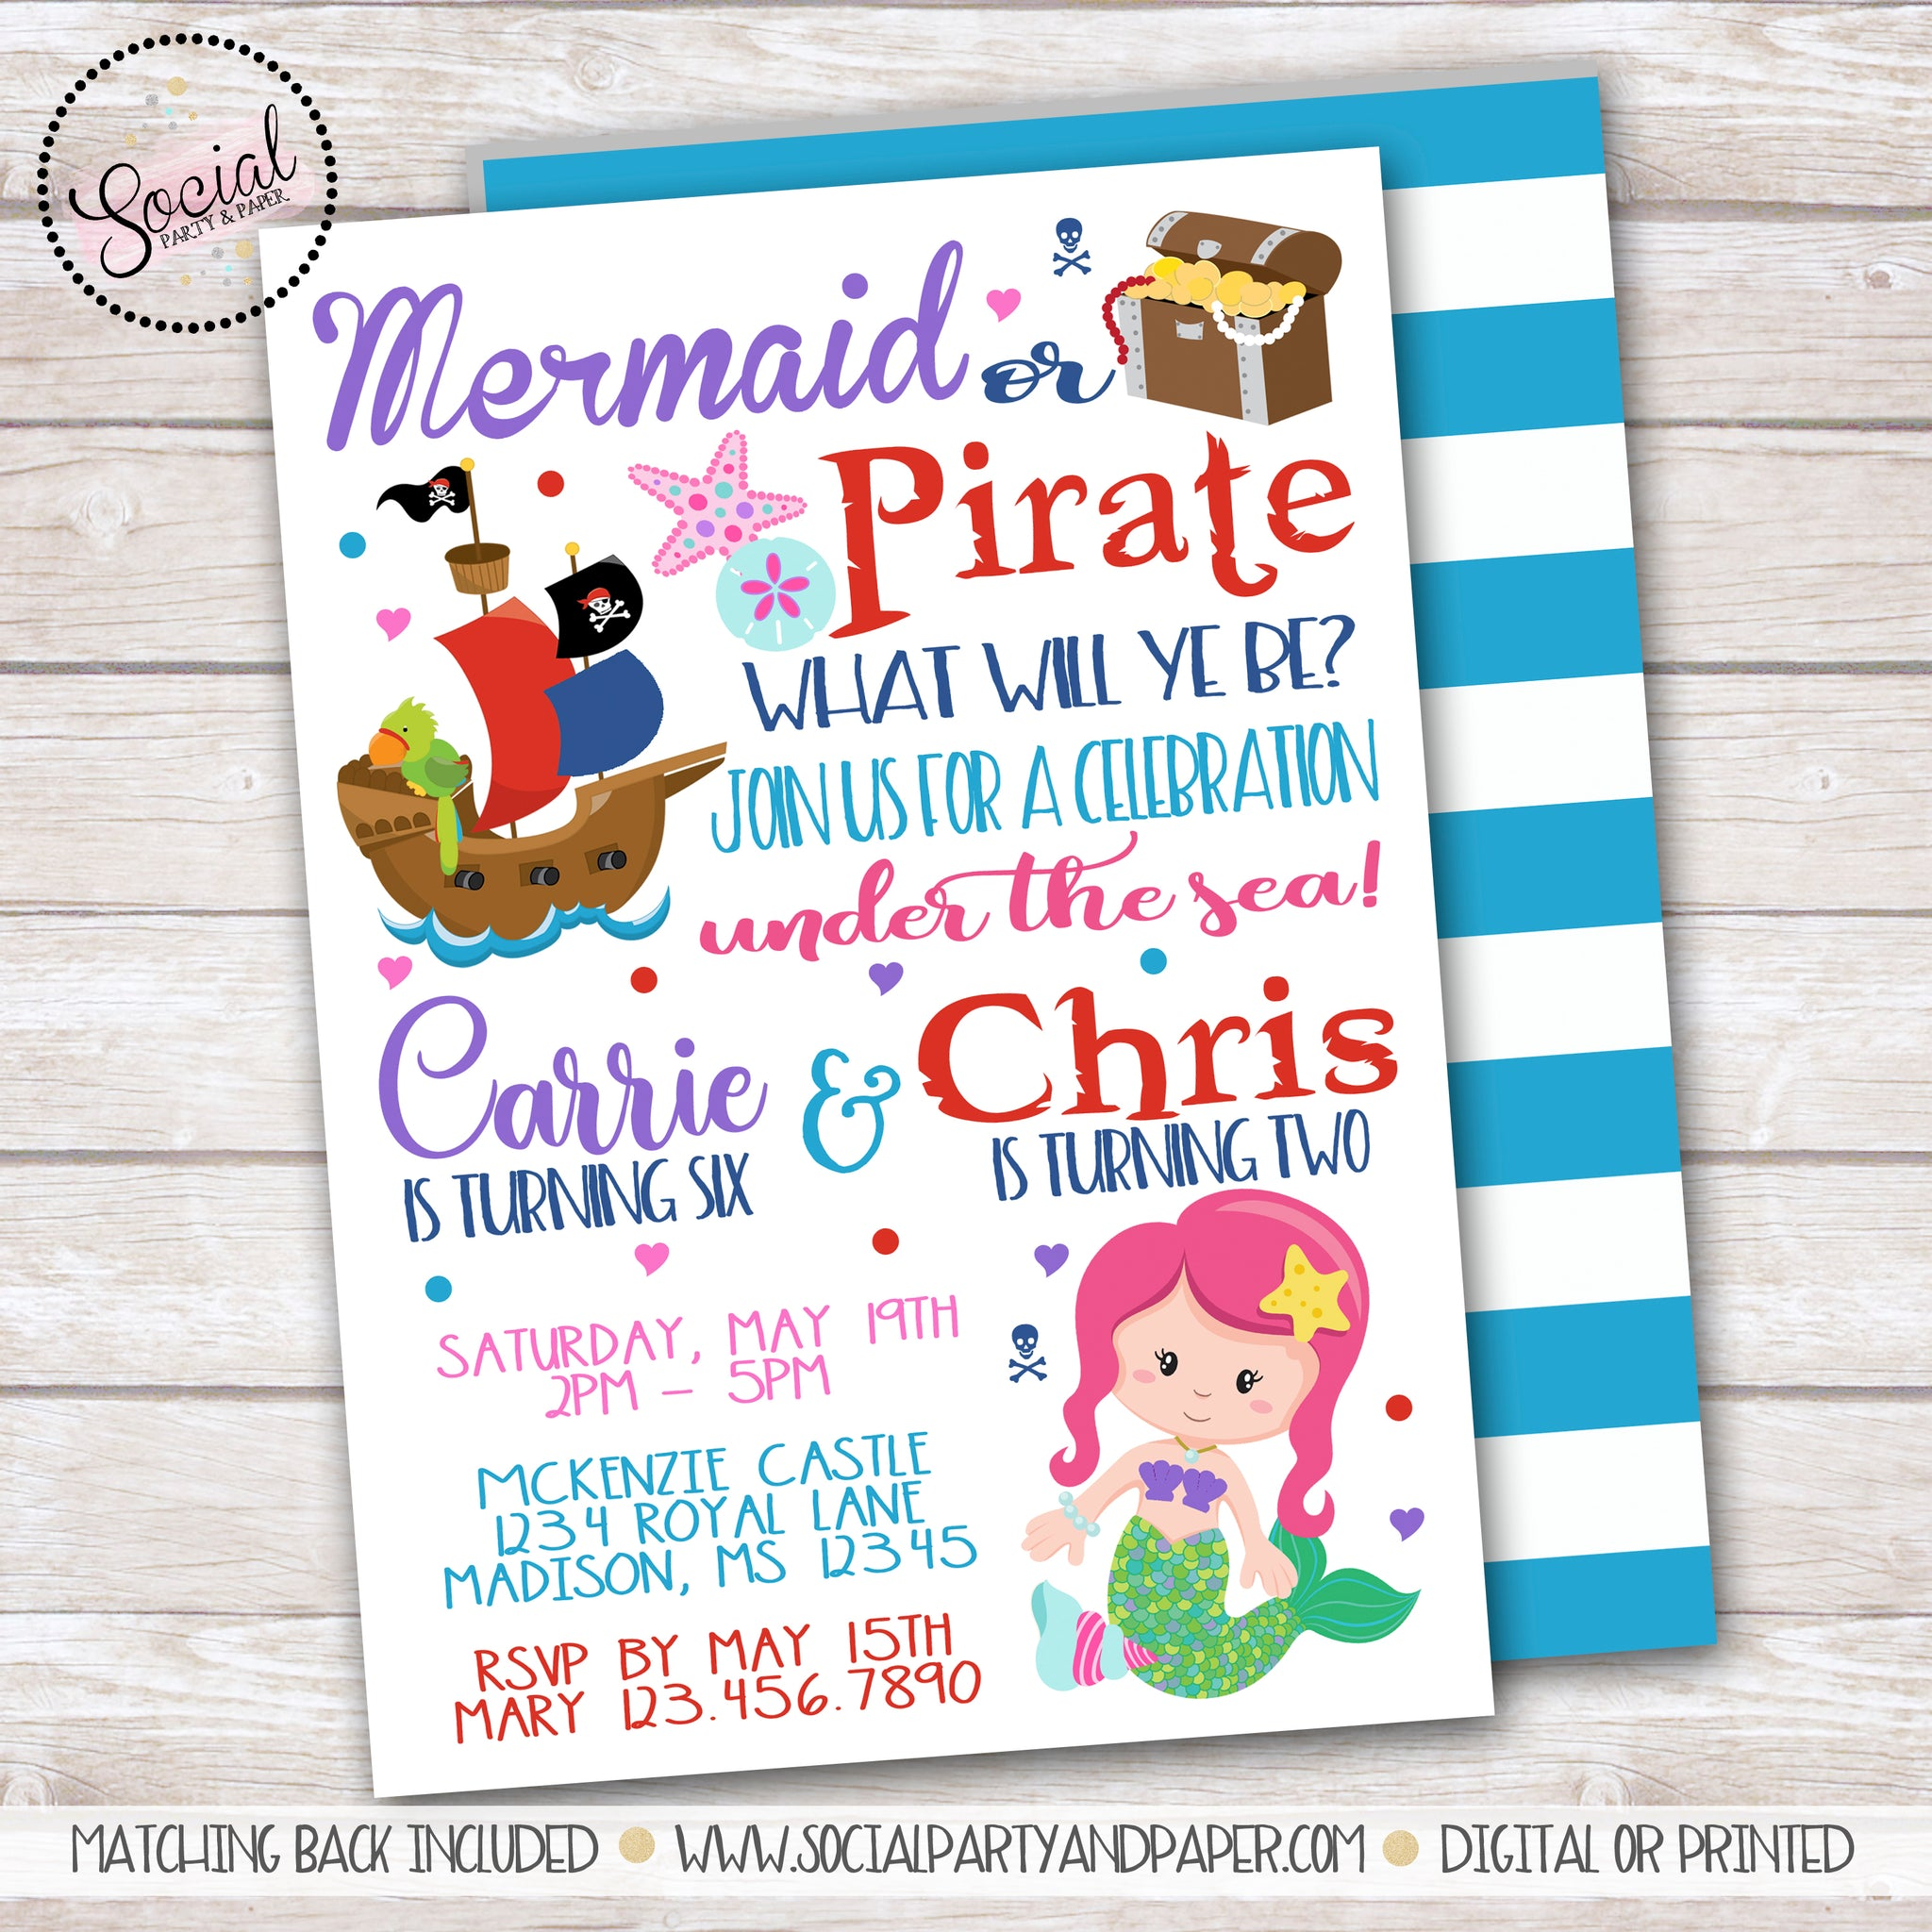 Mermaid and Pirate Birthday Party Invitation – Social Party & Paper